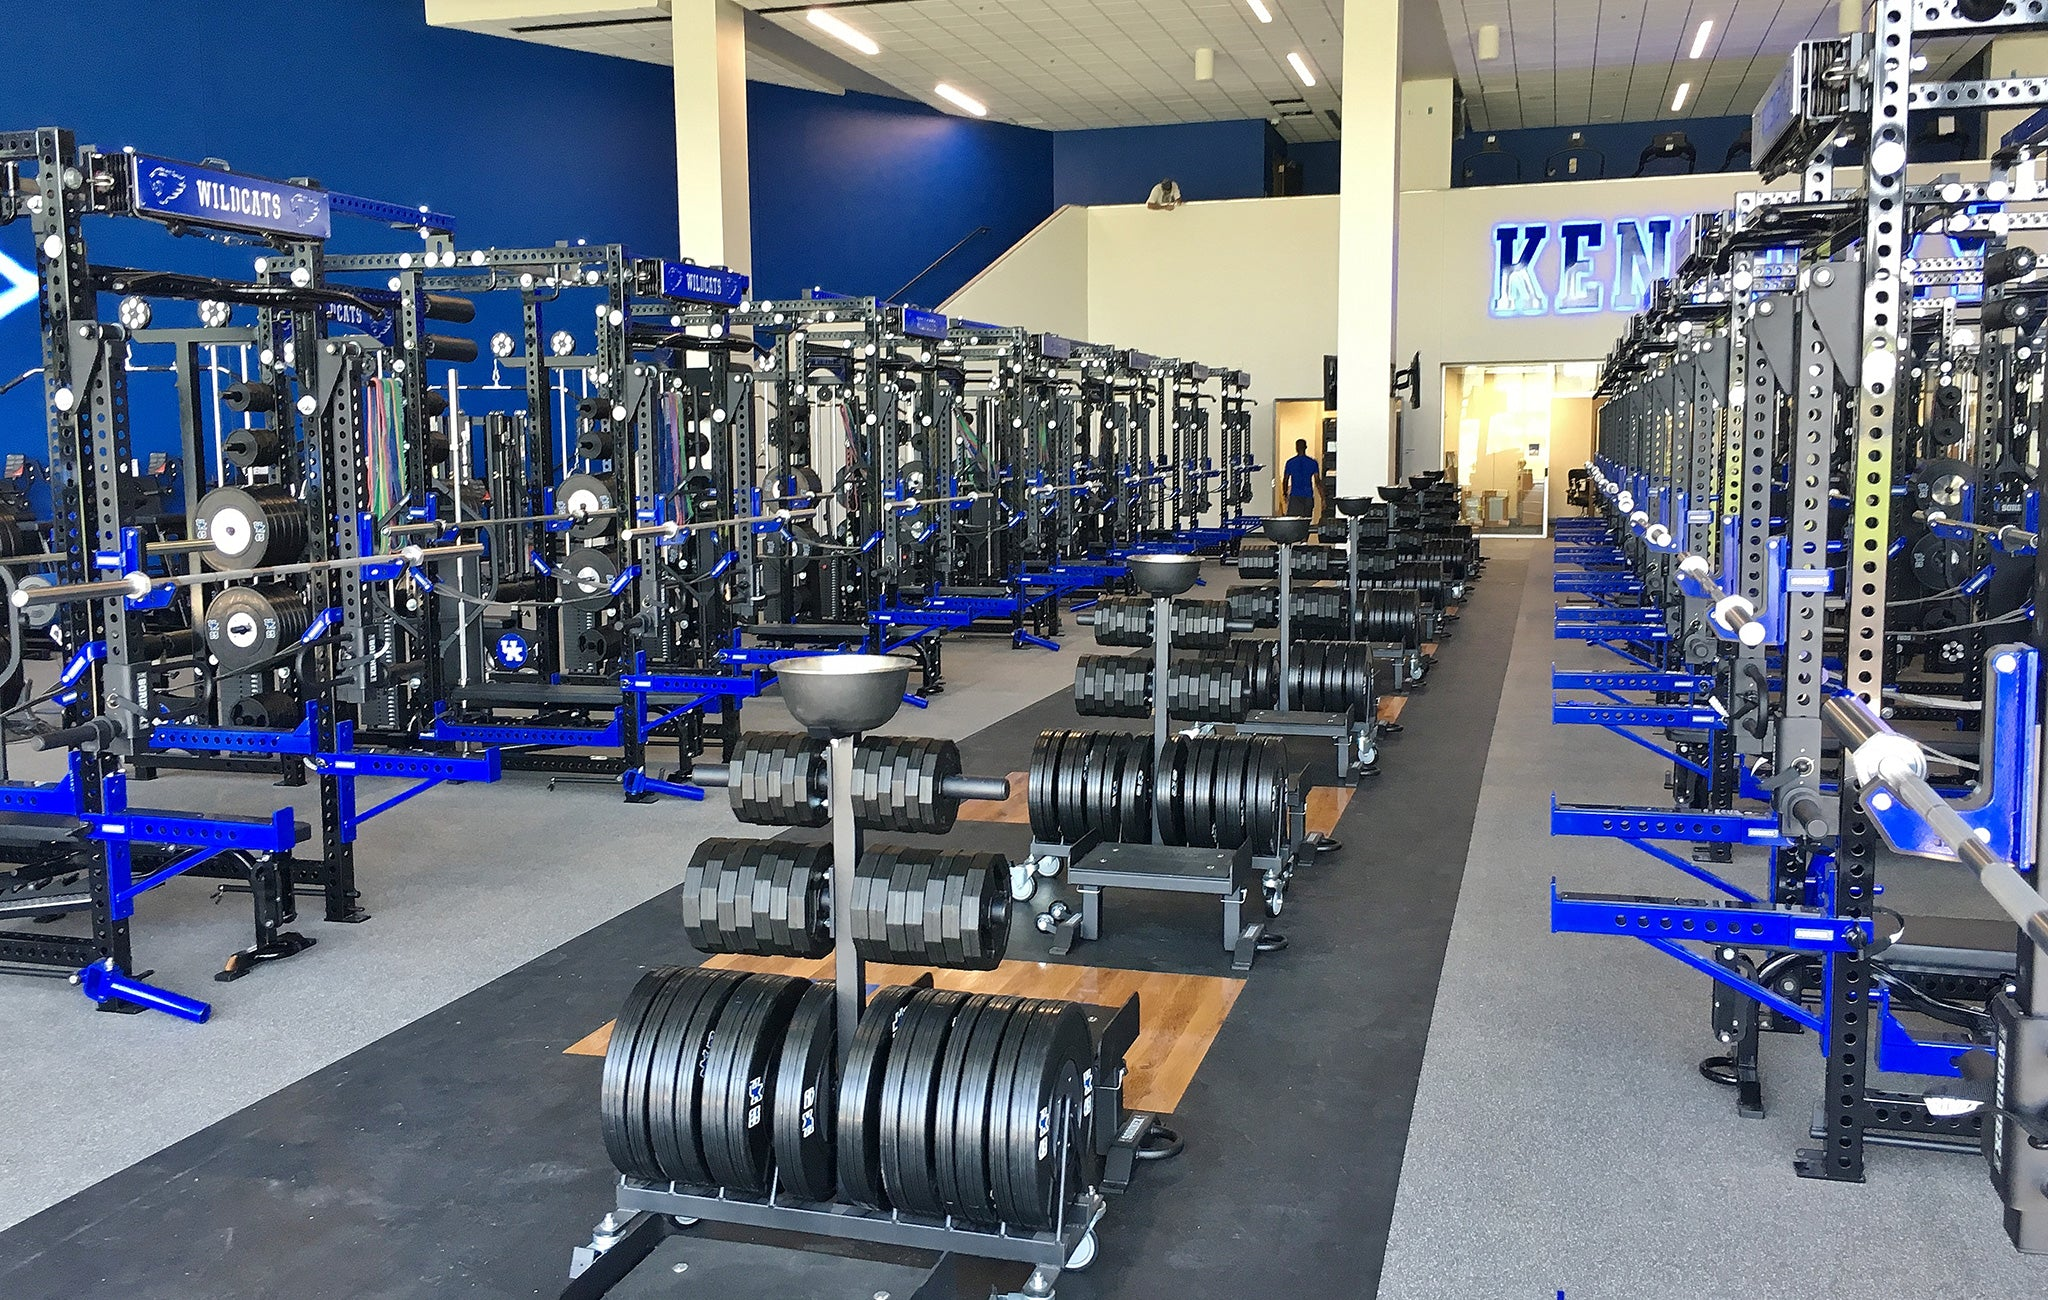 University of Kentucky strength and conditioning